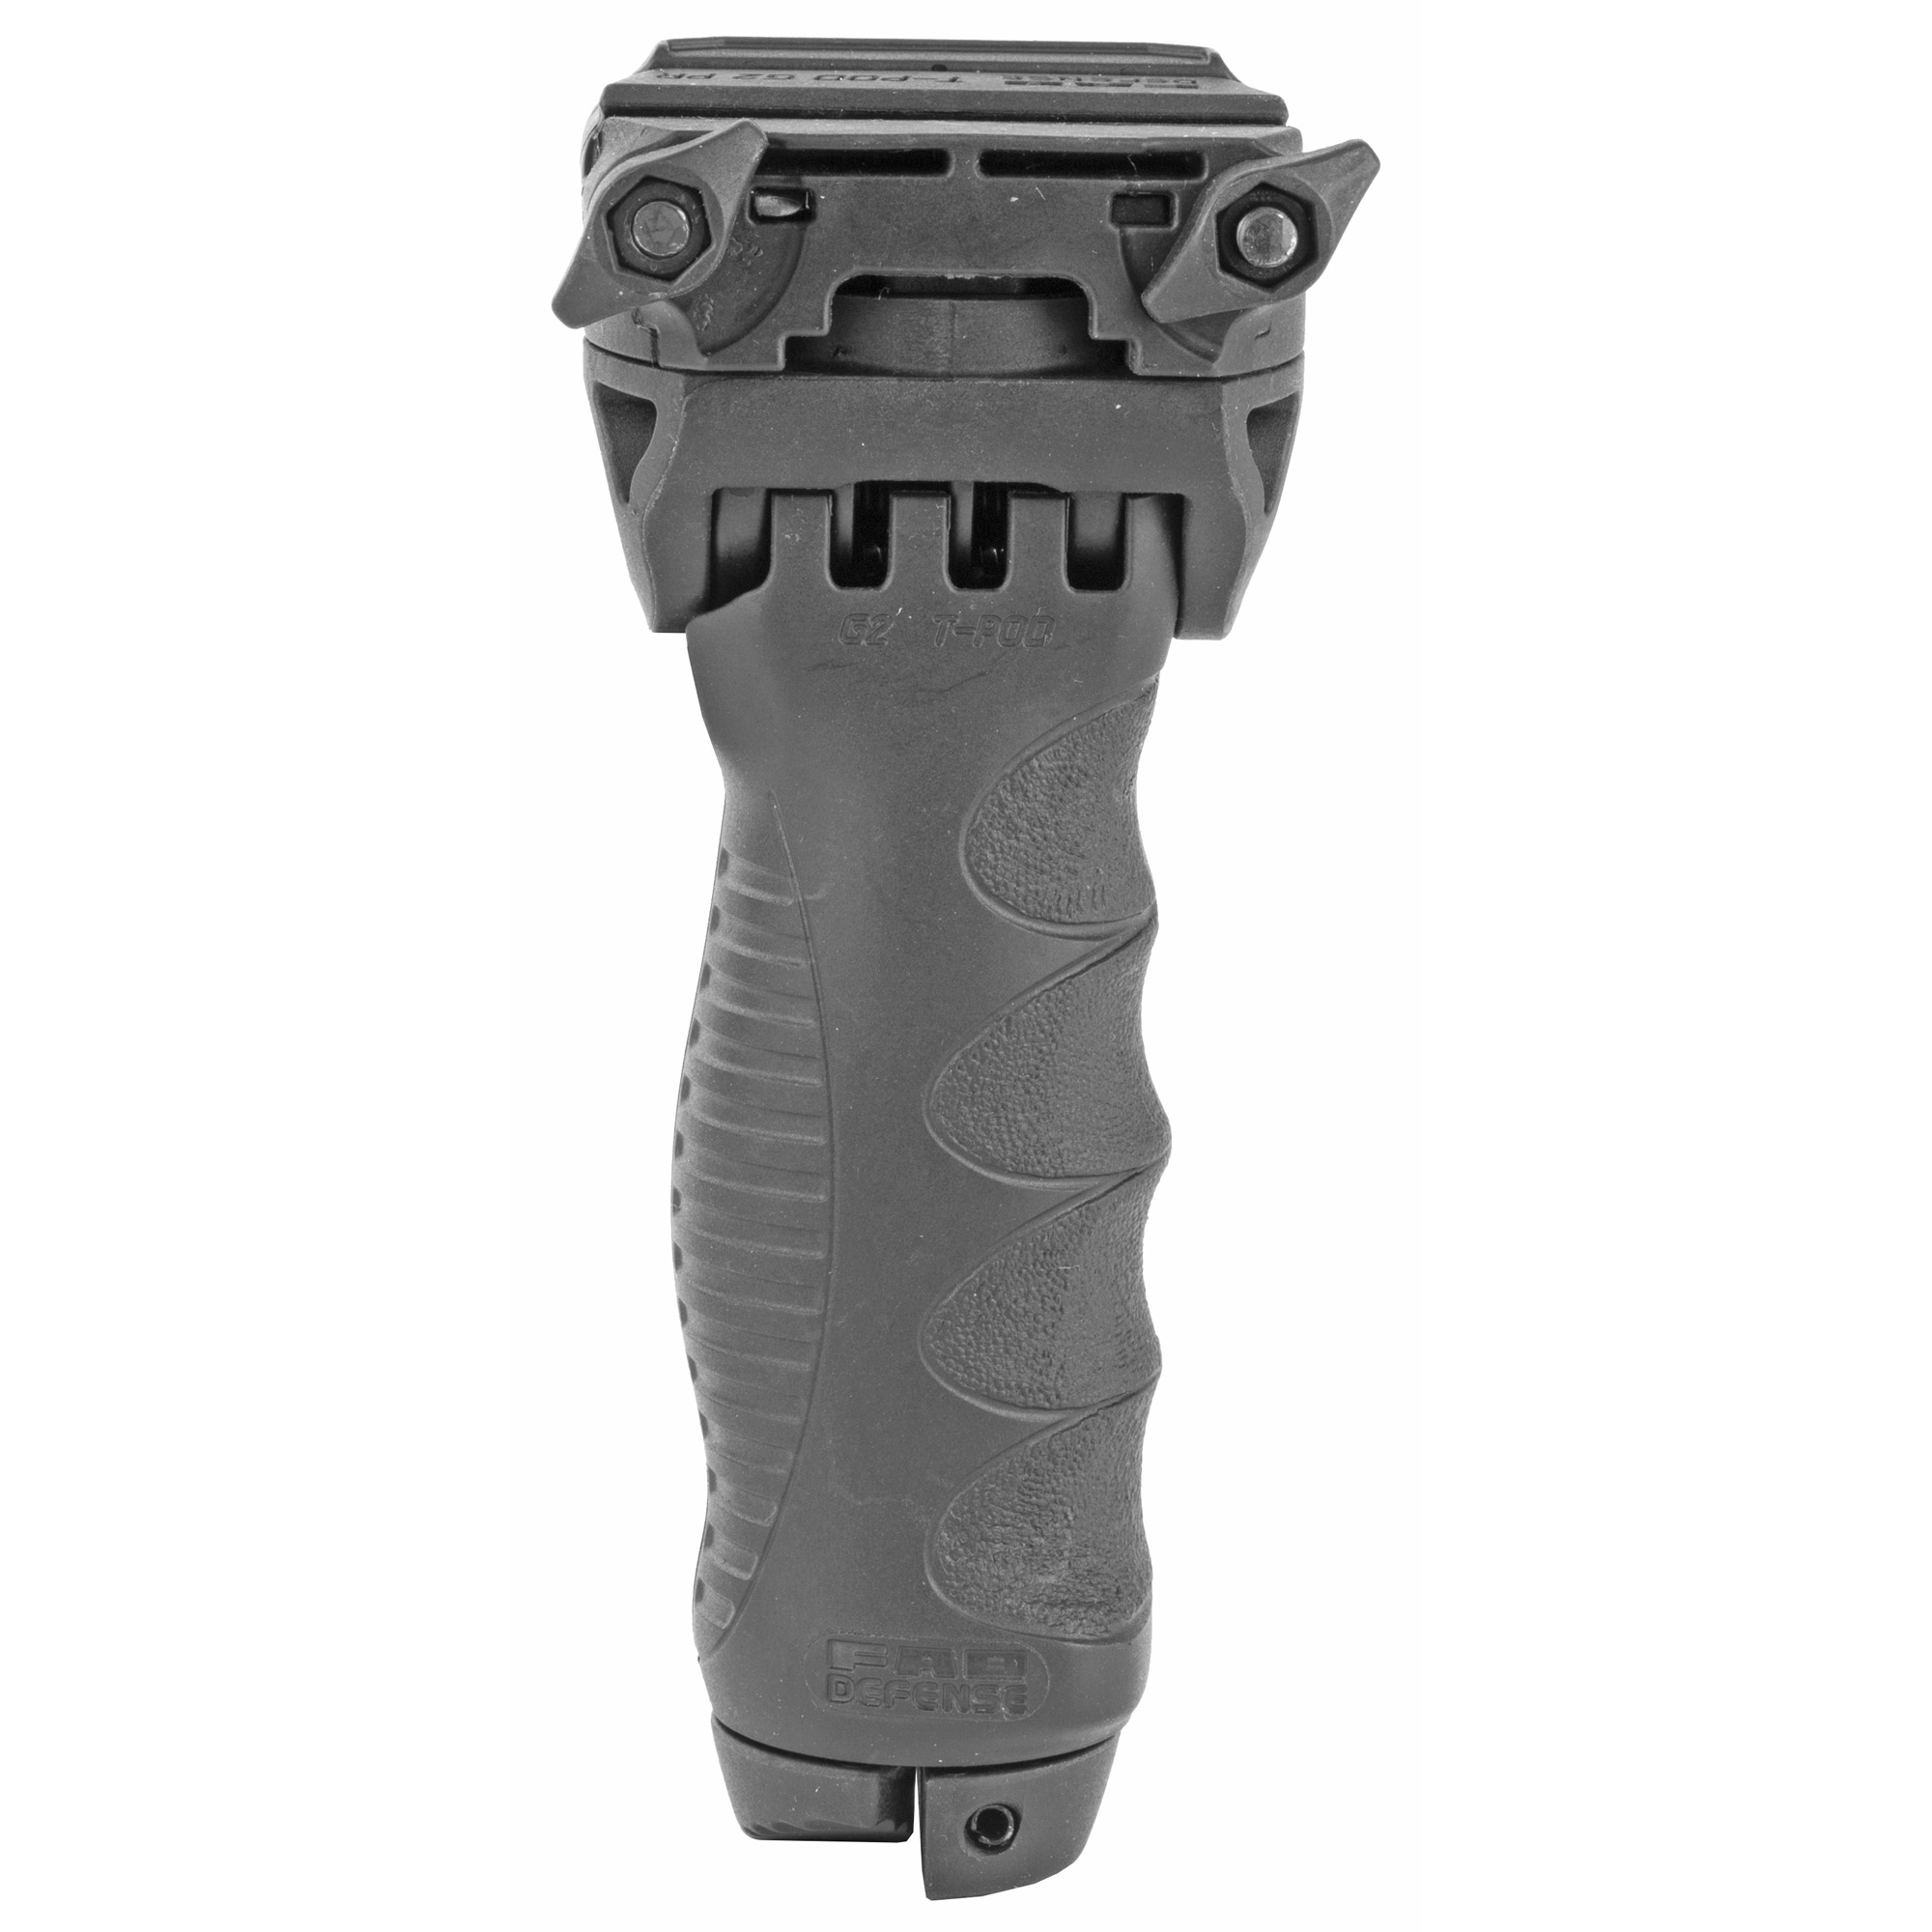 FAB's new uniquely designed T-POD-G2 Rotating Tactical Foregrip & Bipod transforms foregrip into a fully functional Bipod by the push of a button. The head features a unique Rotating and tilting mechanism and there is a built in adjustable pressure switch mount.